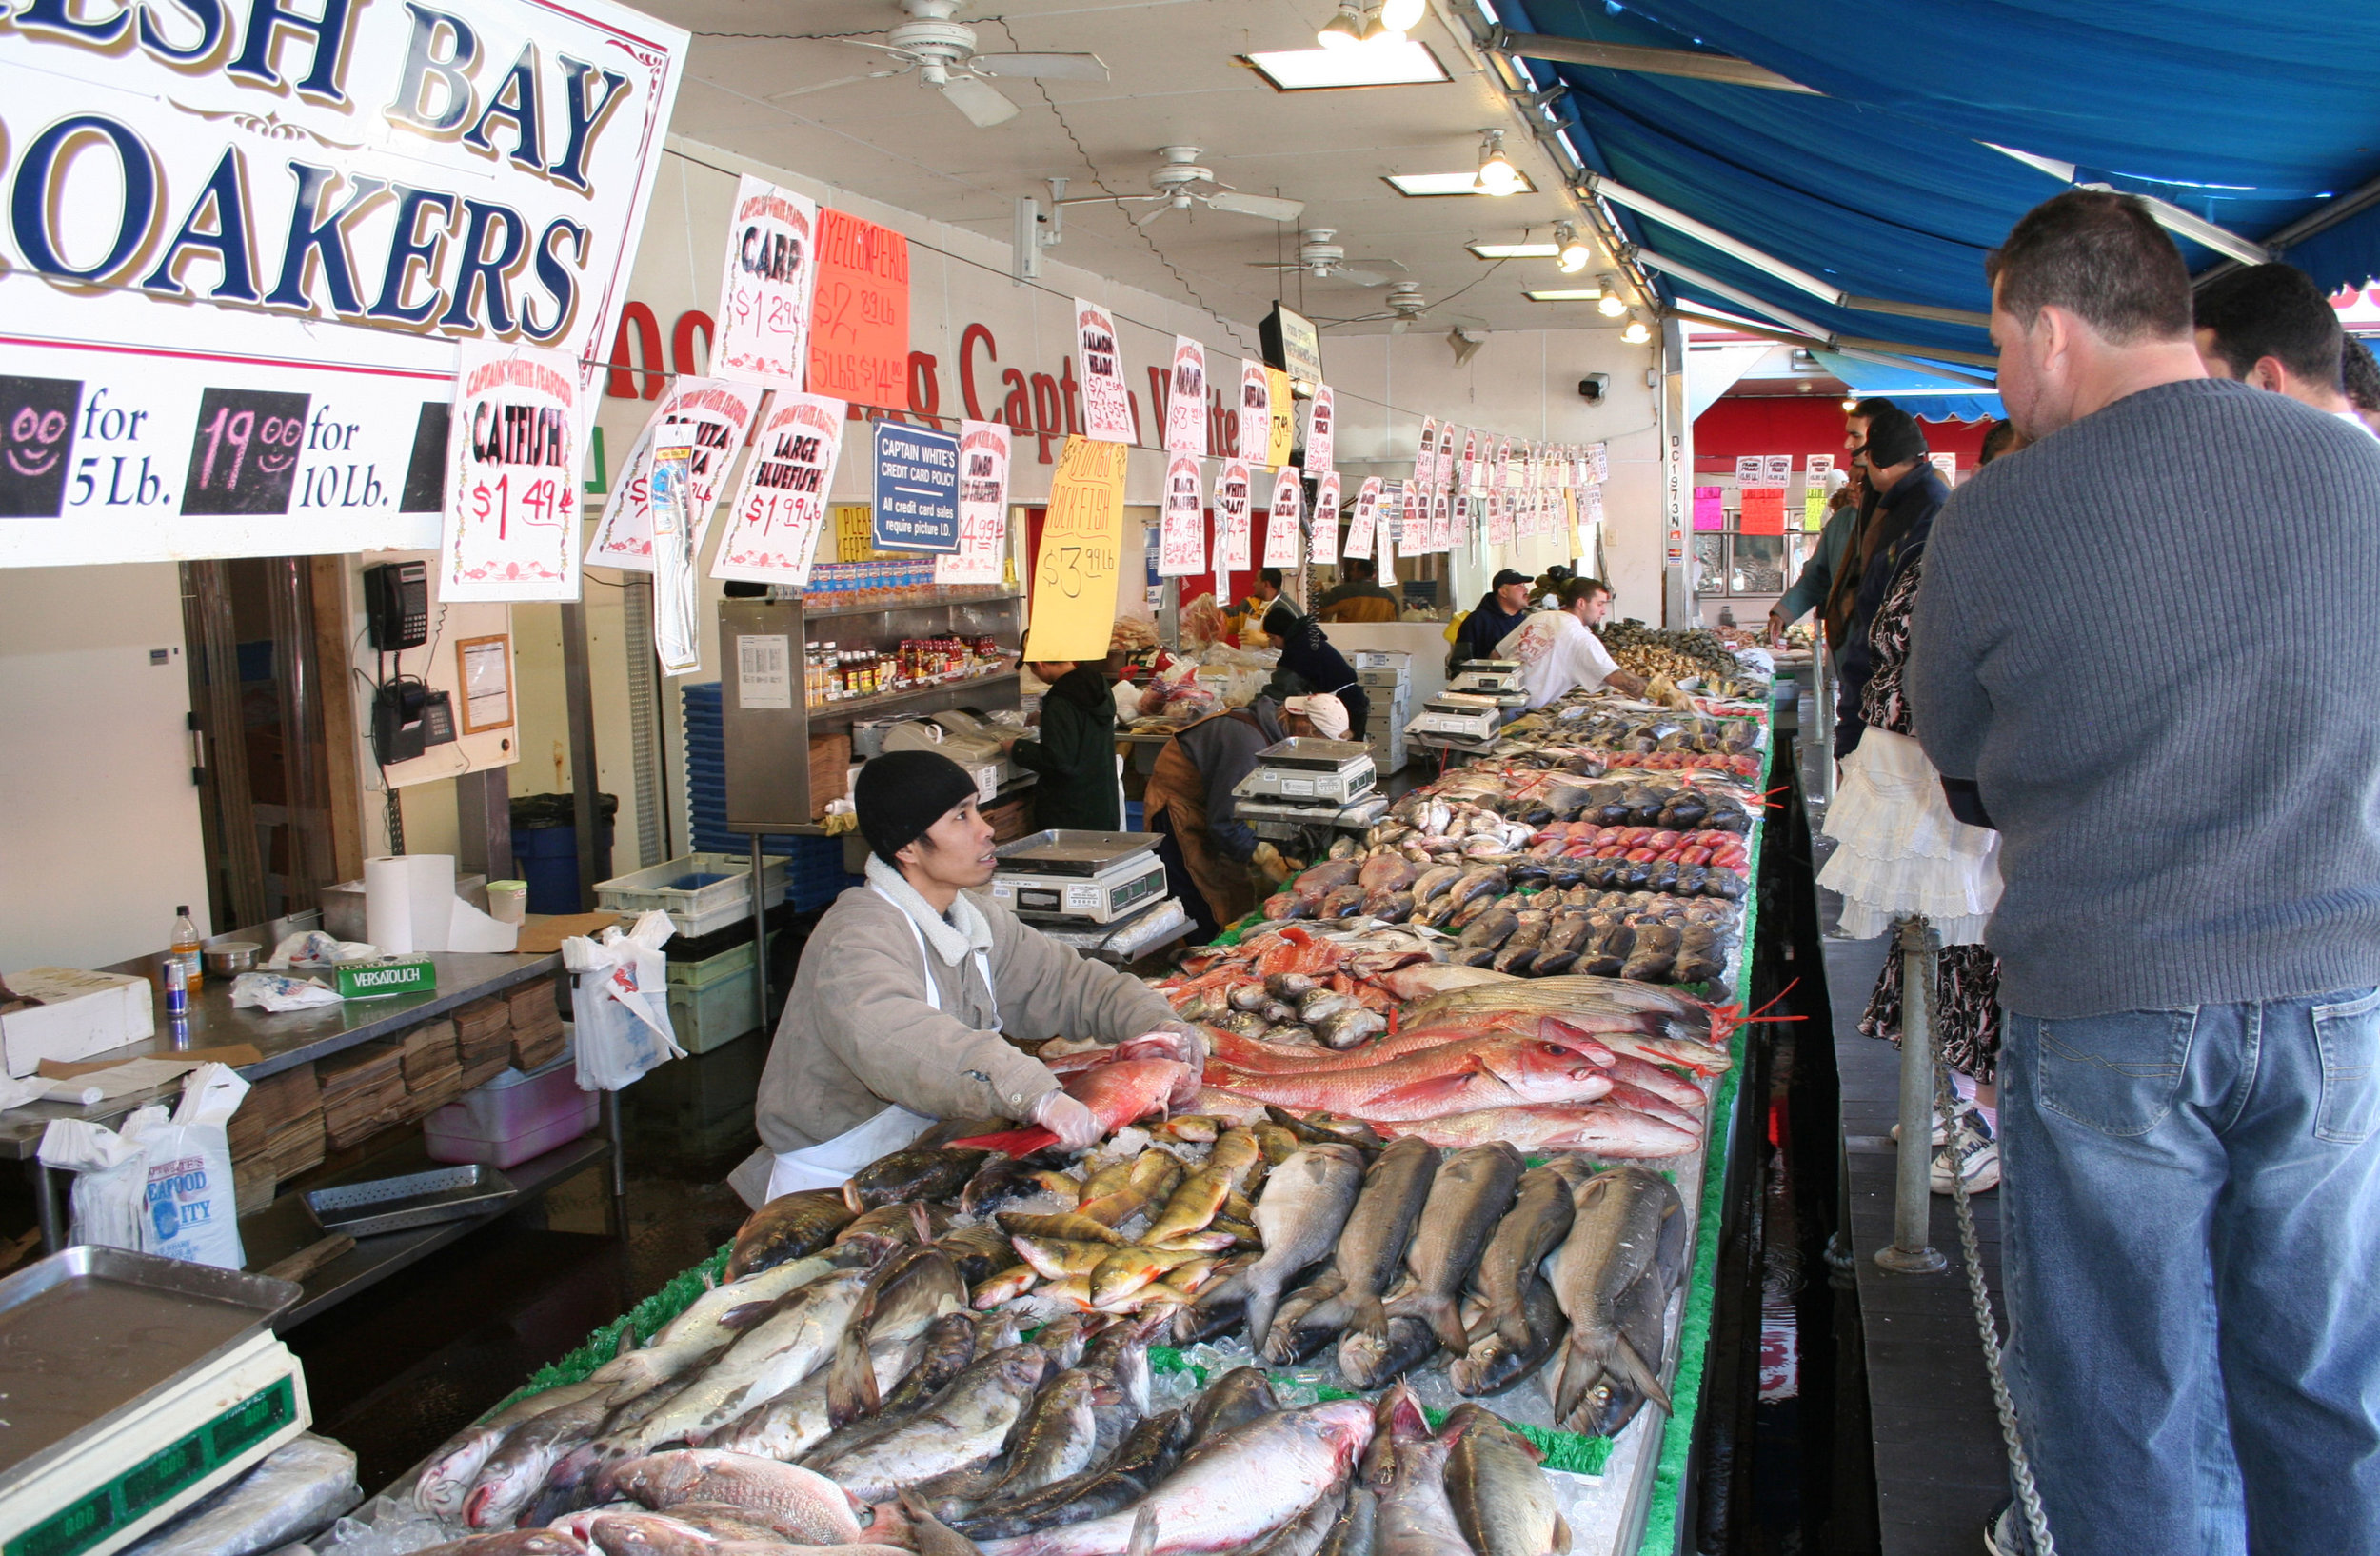 The  Maine Avenue Fish Market : A perfect example of economic agglomeration